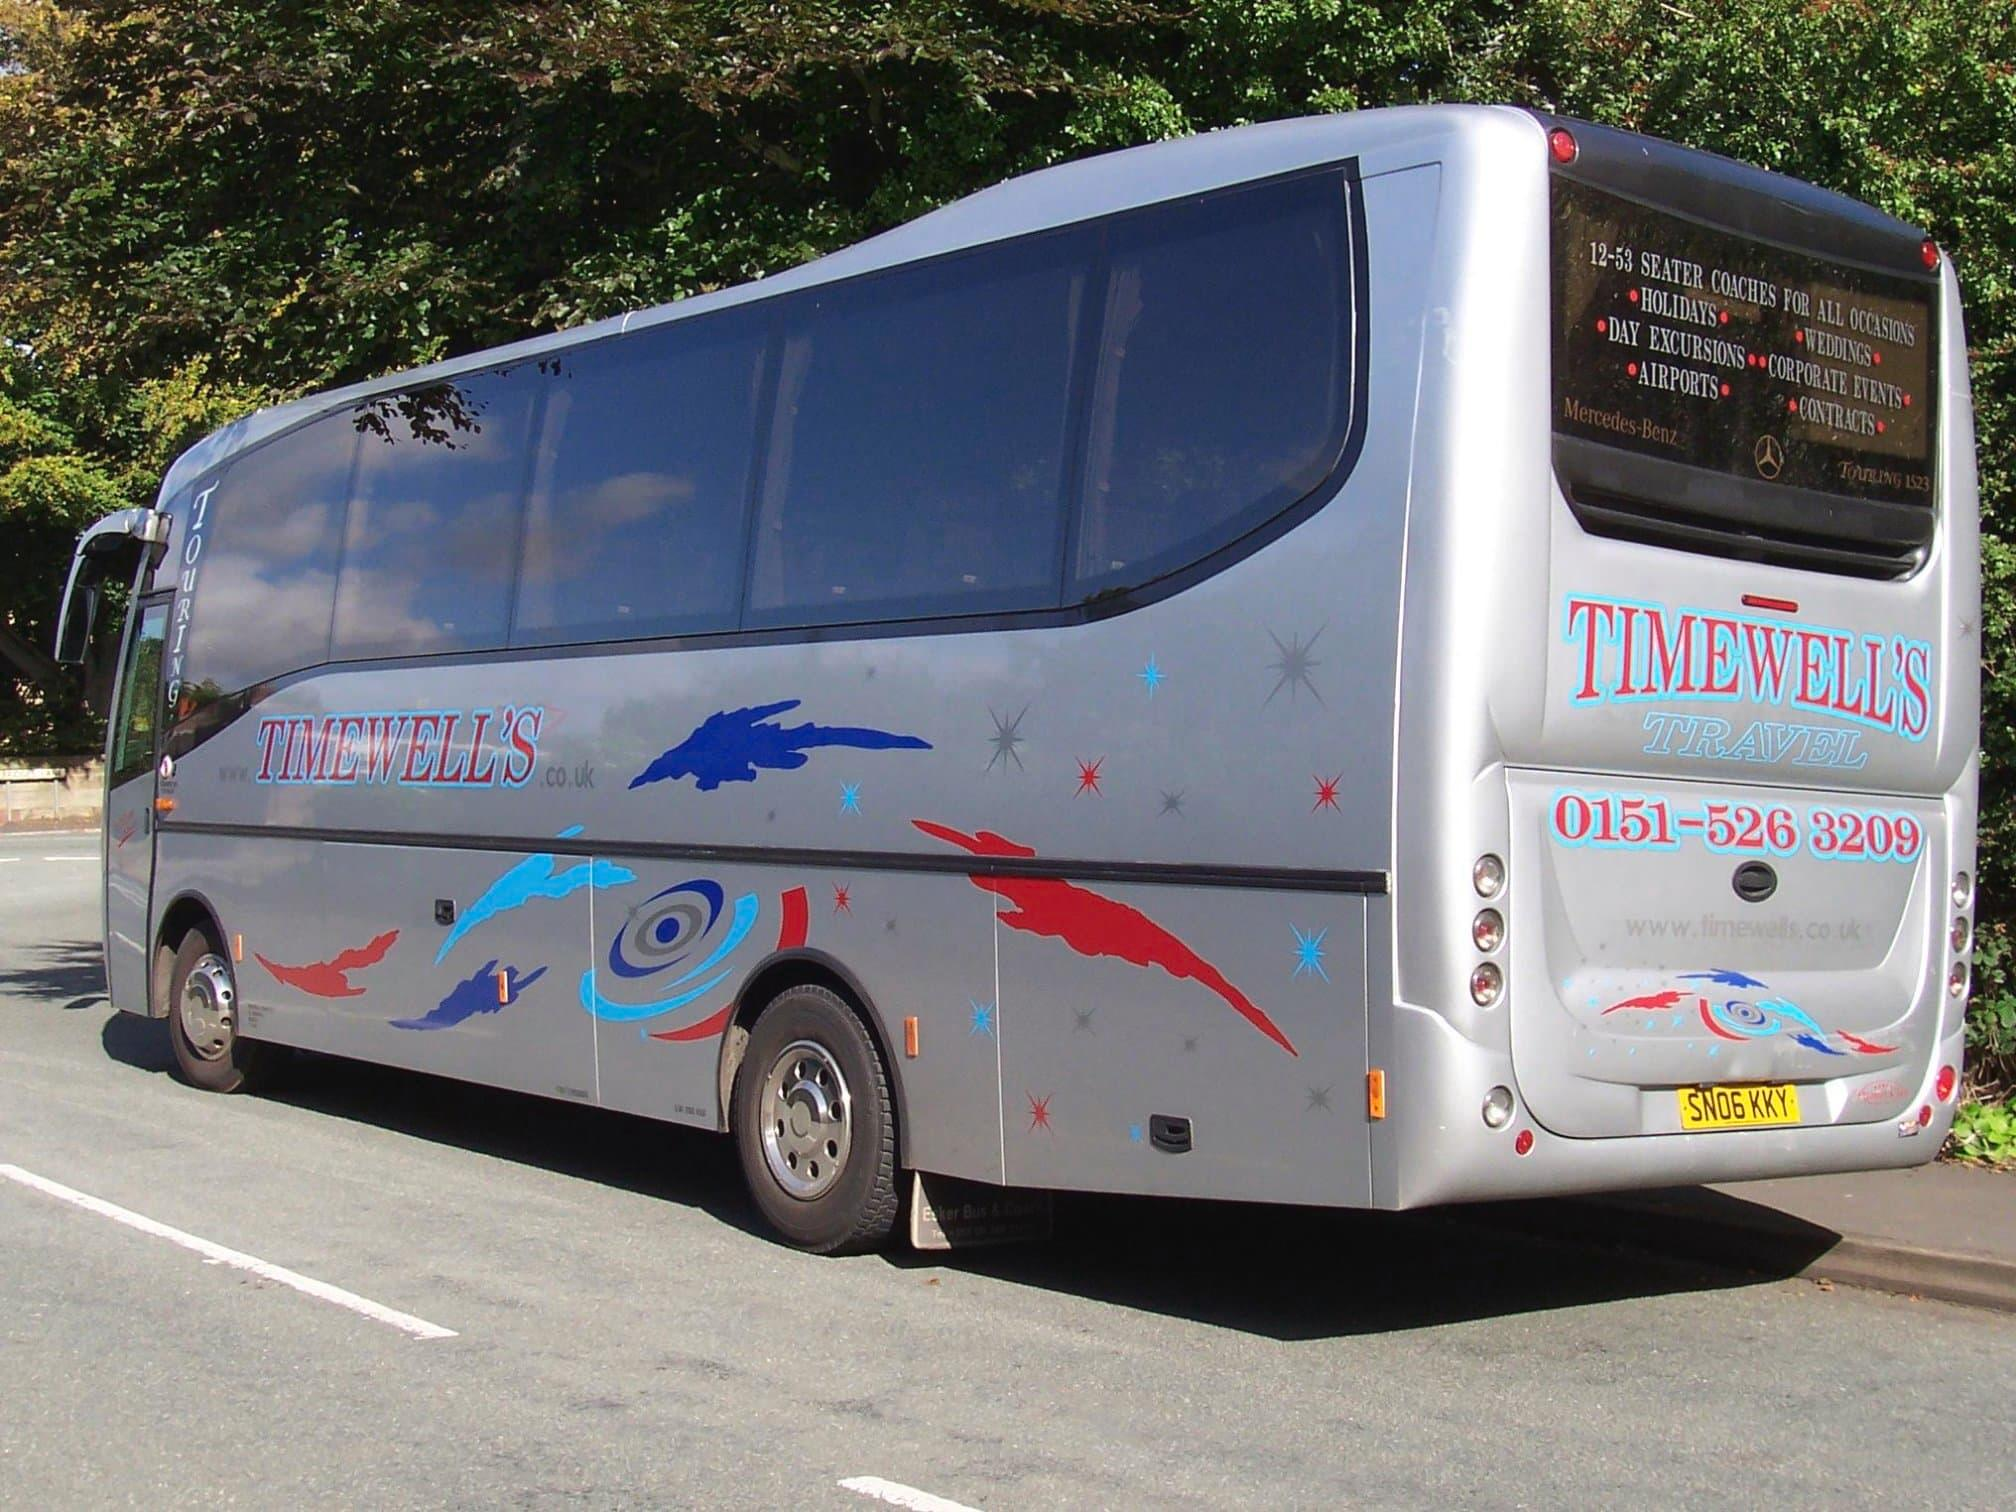 Timewells Travel Ltd